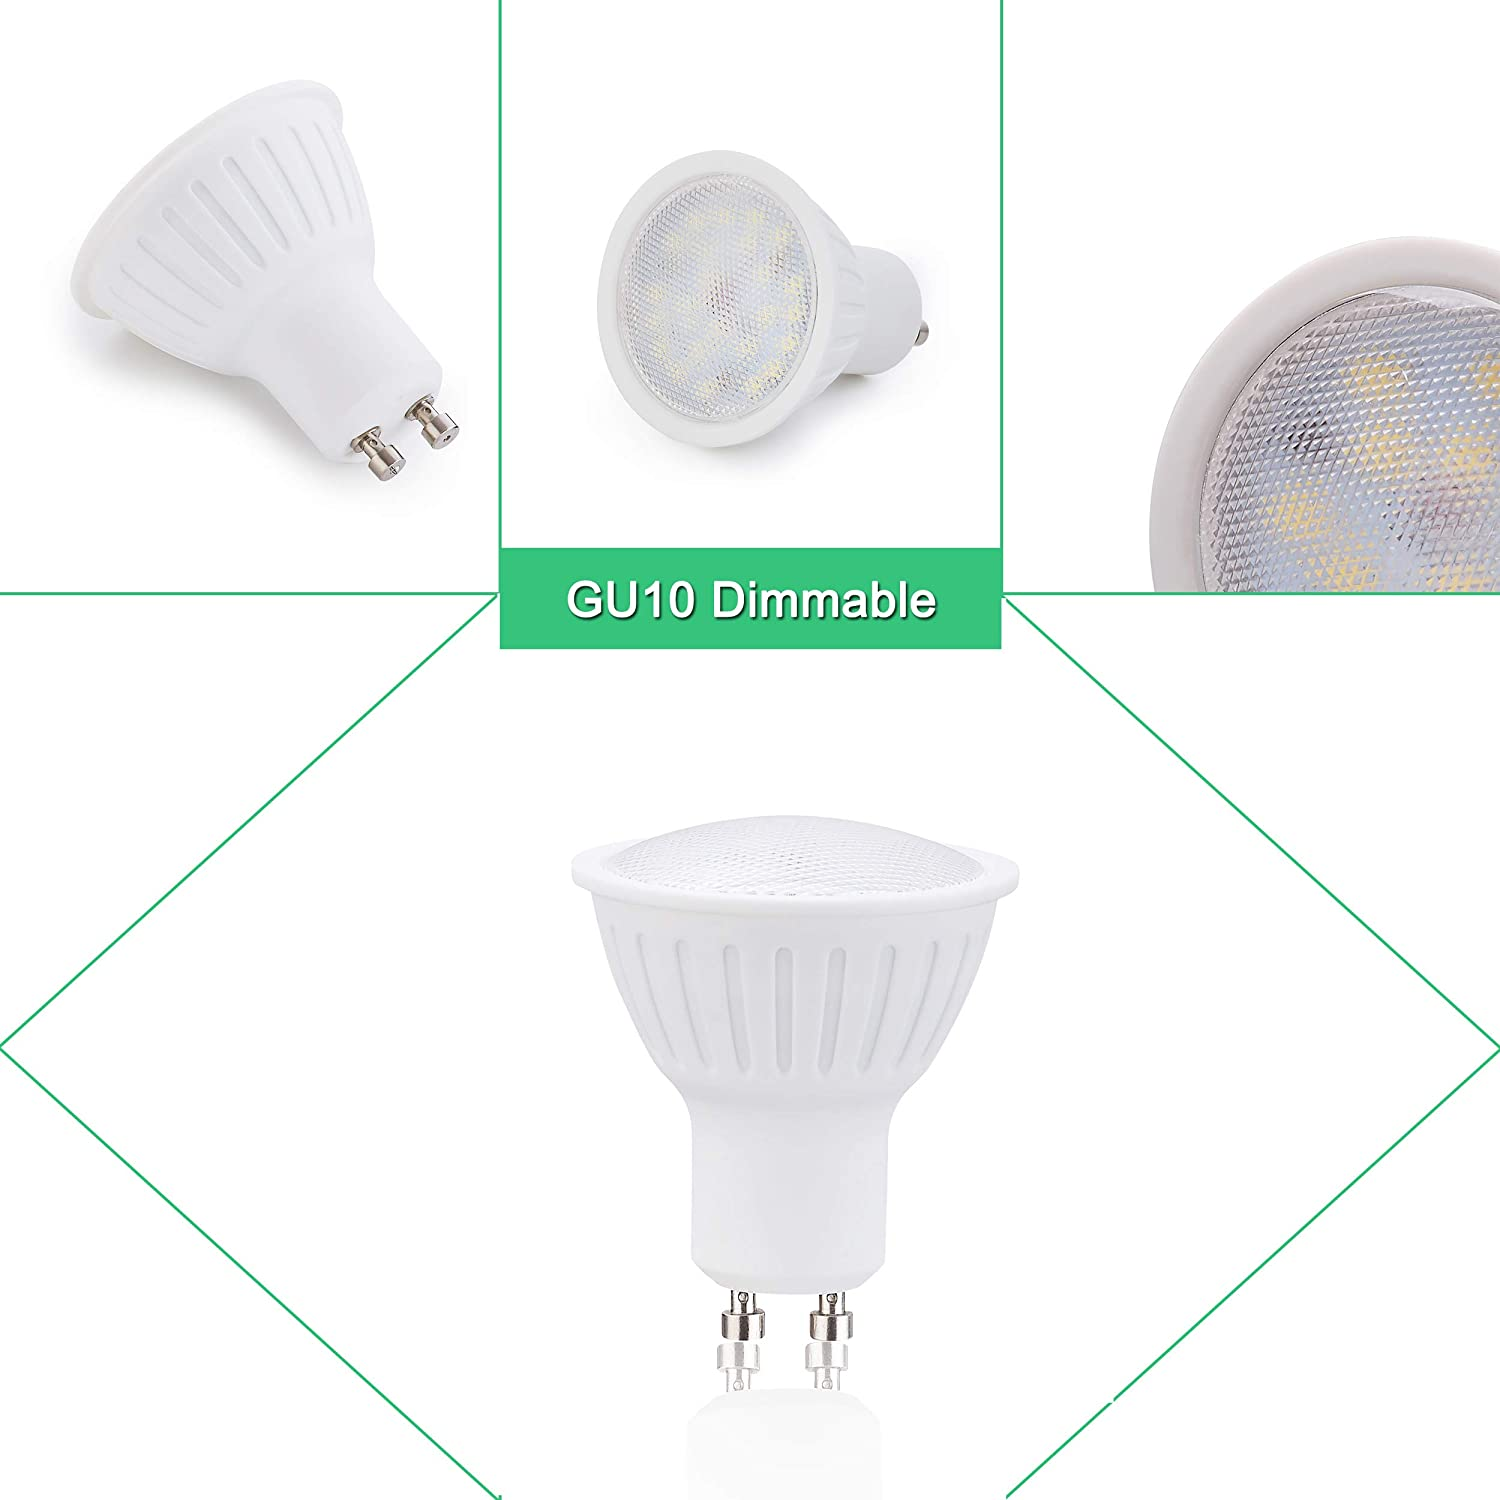 6 Pack 120° Beam Angle 3W GU10 LED Bulb 700 Lumens 30W Halogen Bulbs Replacement 5000K Daynight White CRI85+ Dimmable 120V Bombilla Light Bulb for Ceiling ...